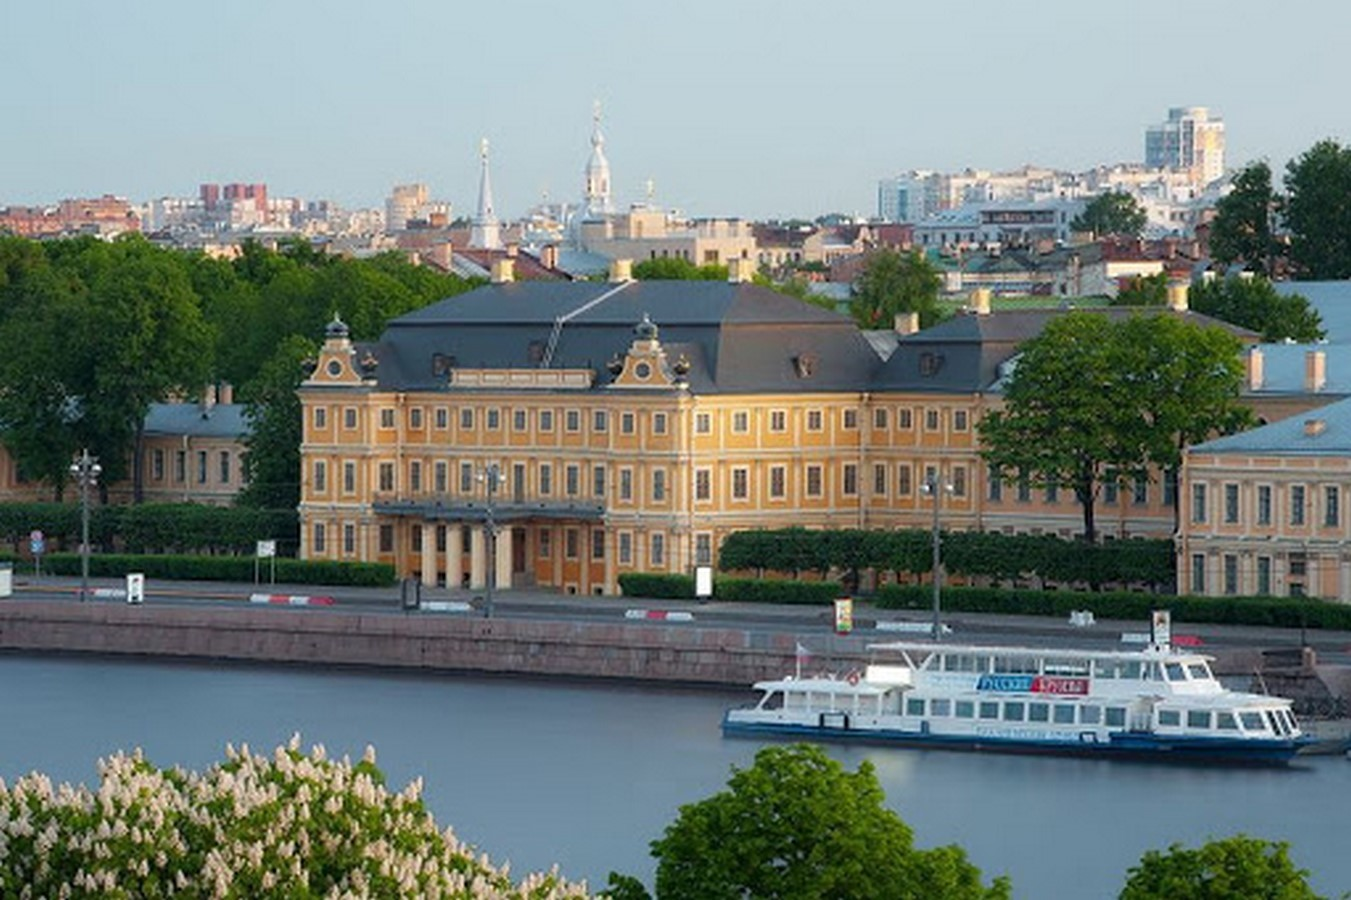 10 Reasons why Architects should visit Russia - Sheet18